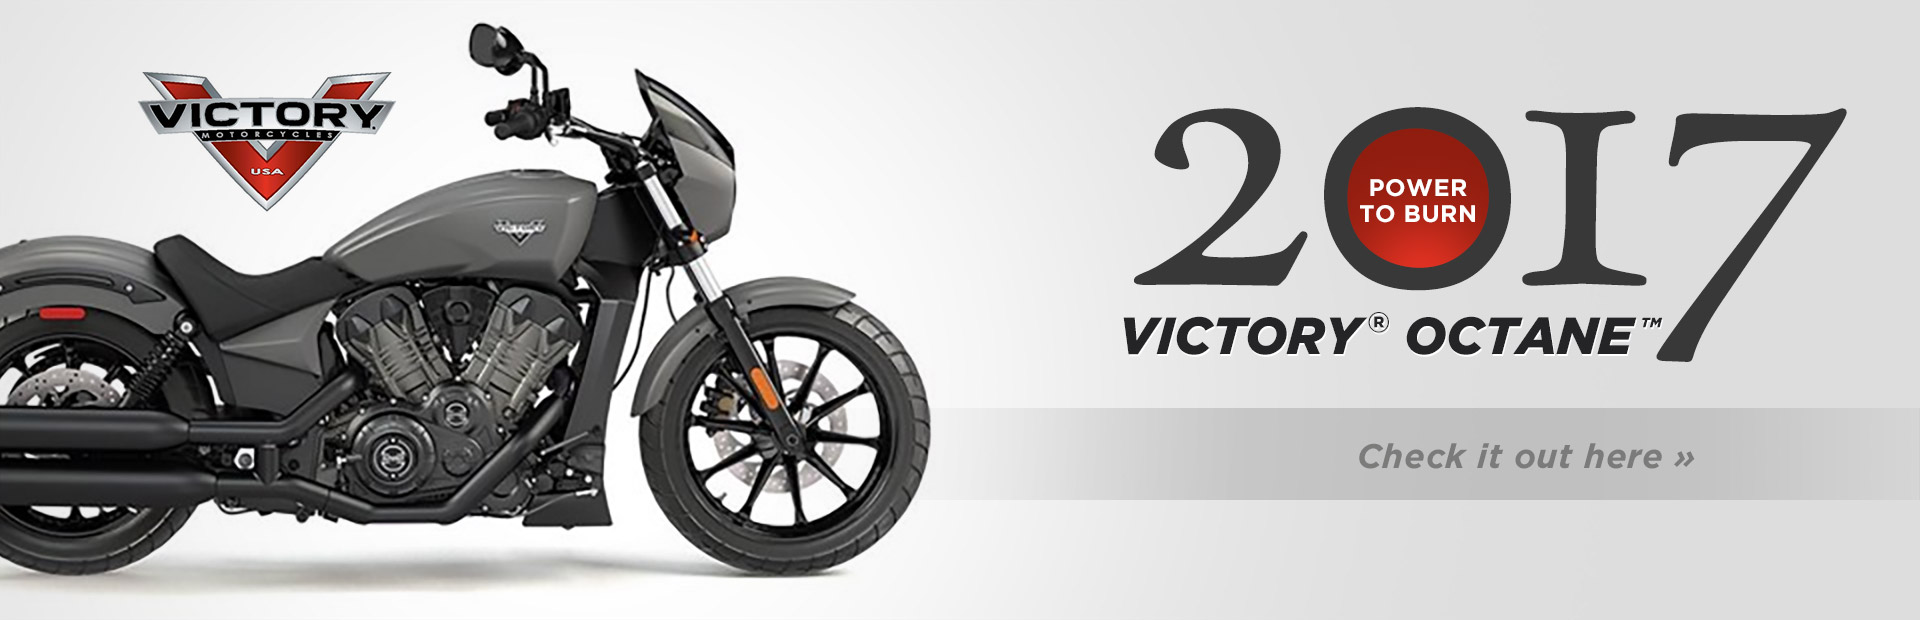 2017 Victory® Octane™: Click here for details!